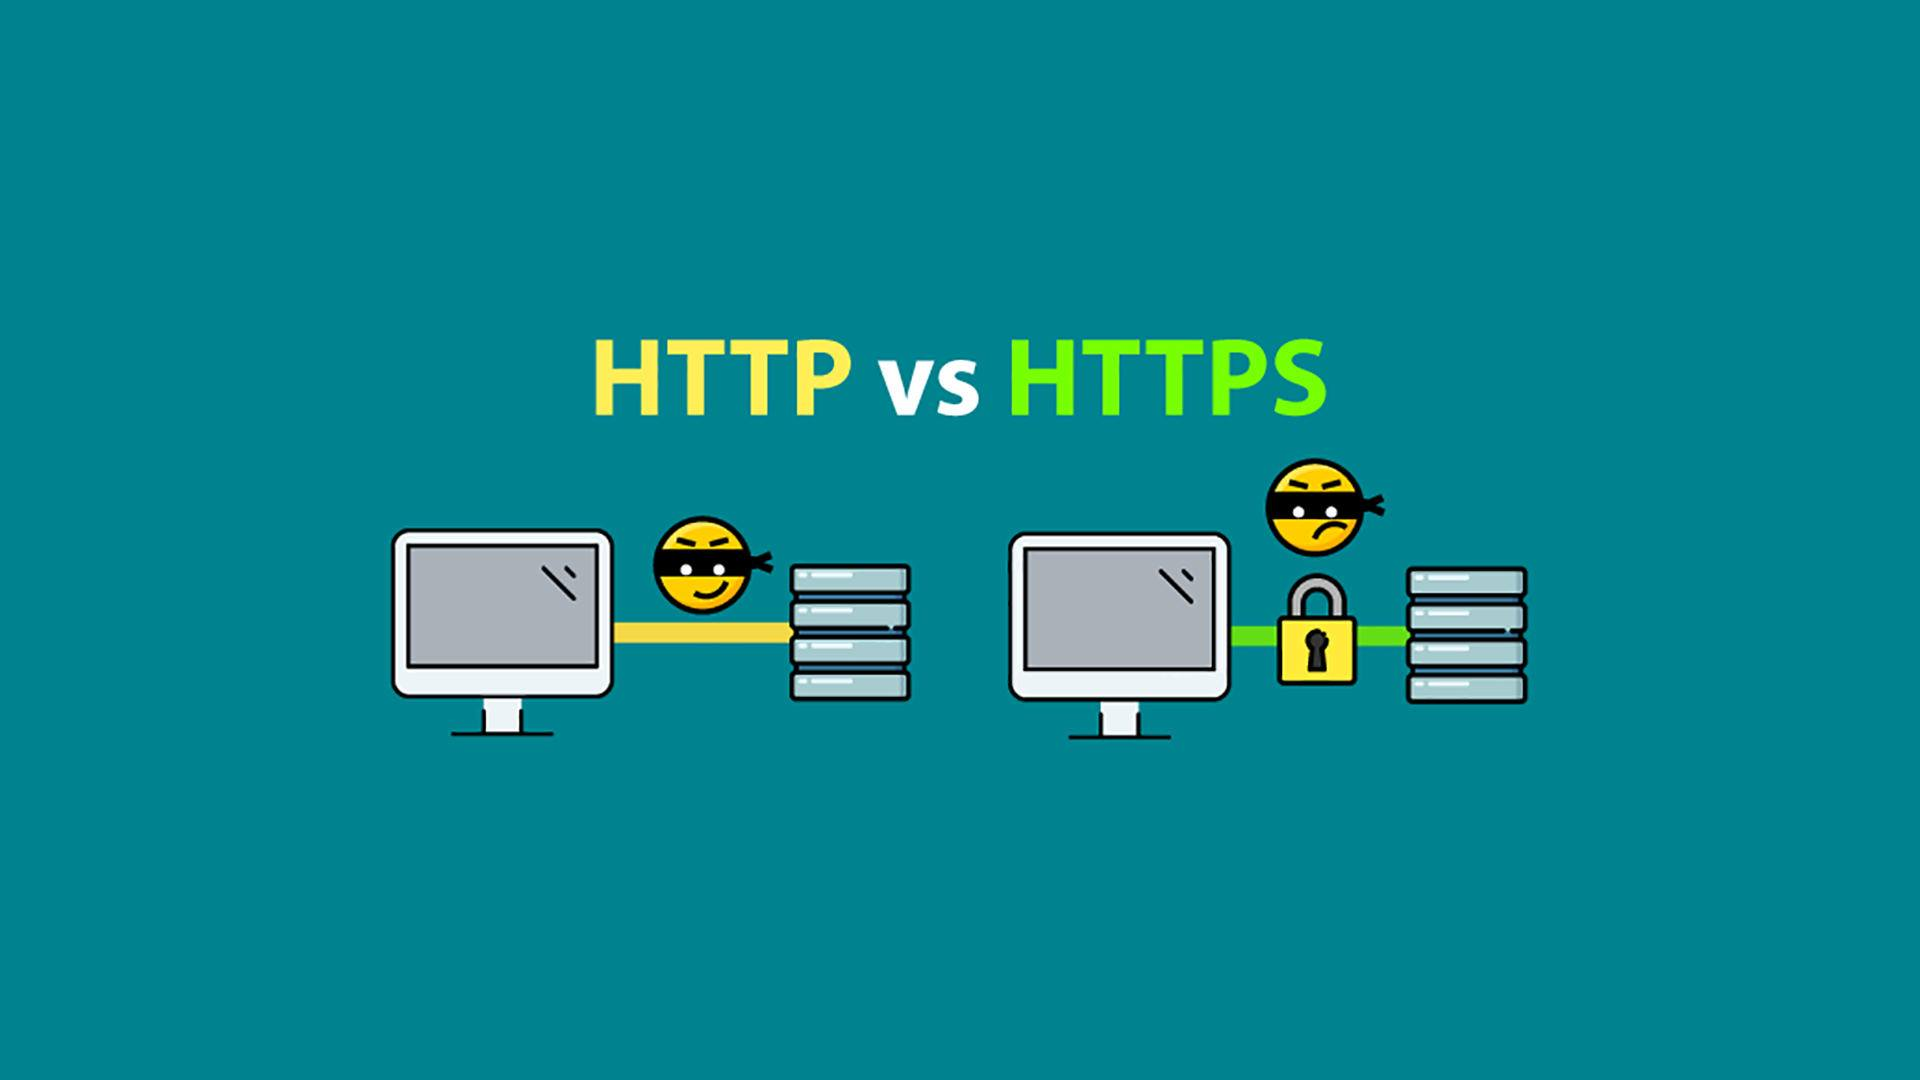 HTTPS alone won't save your website from hacks